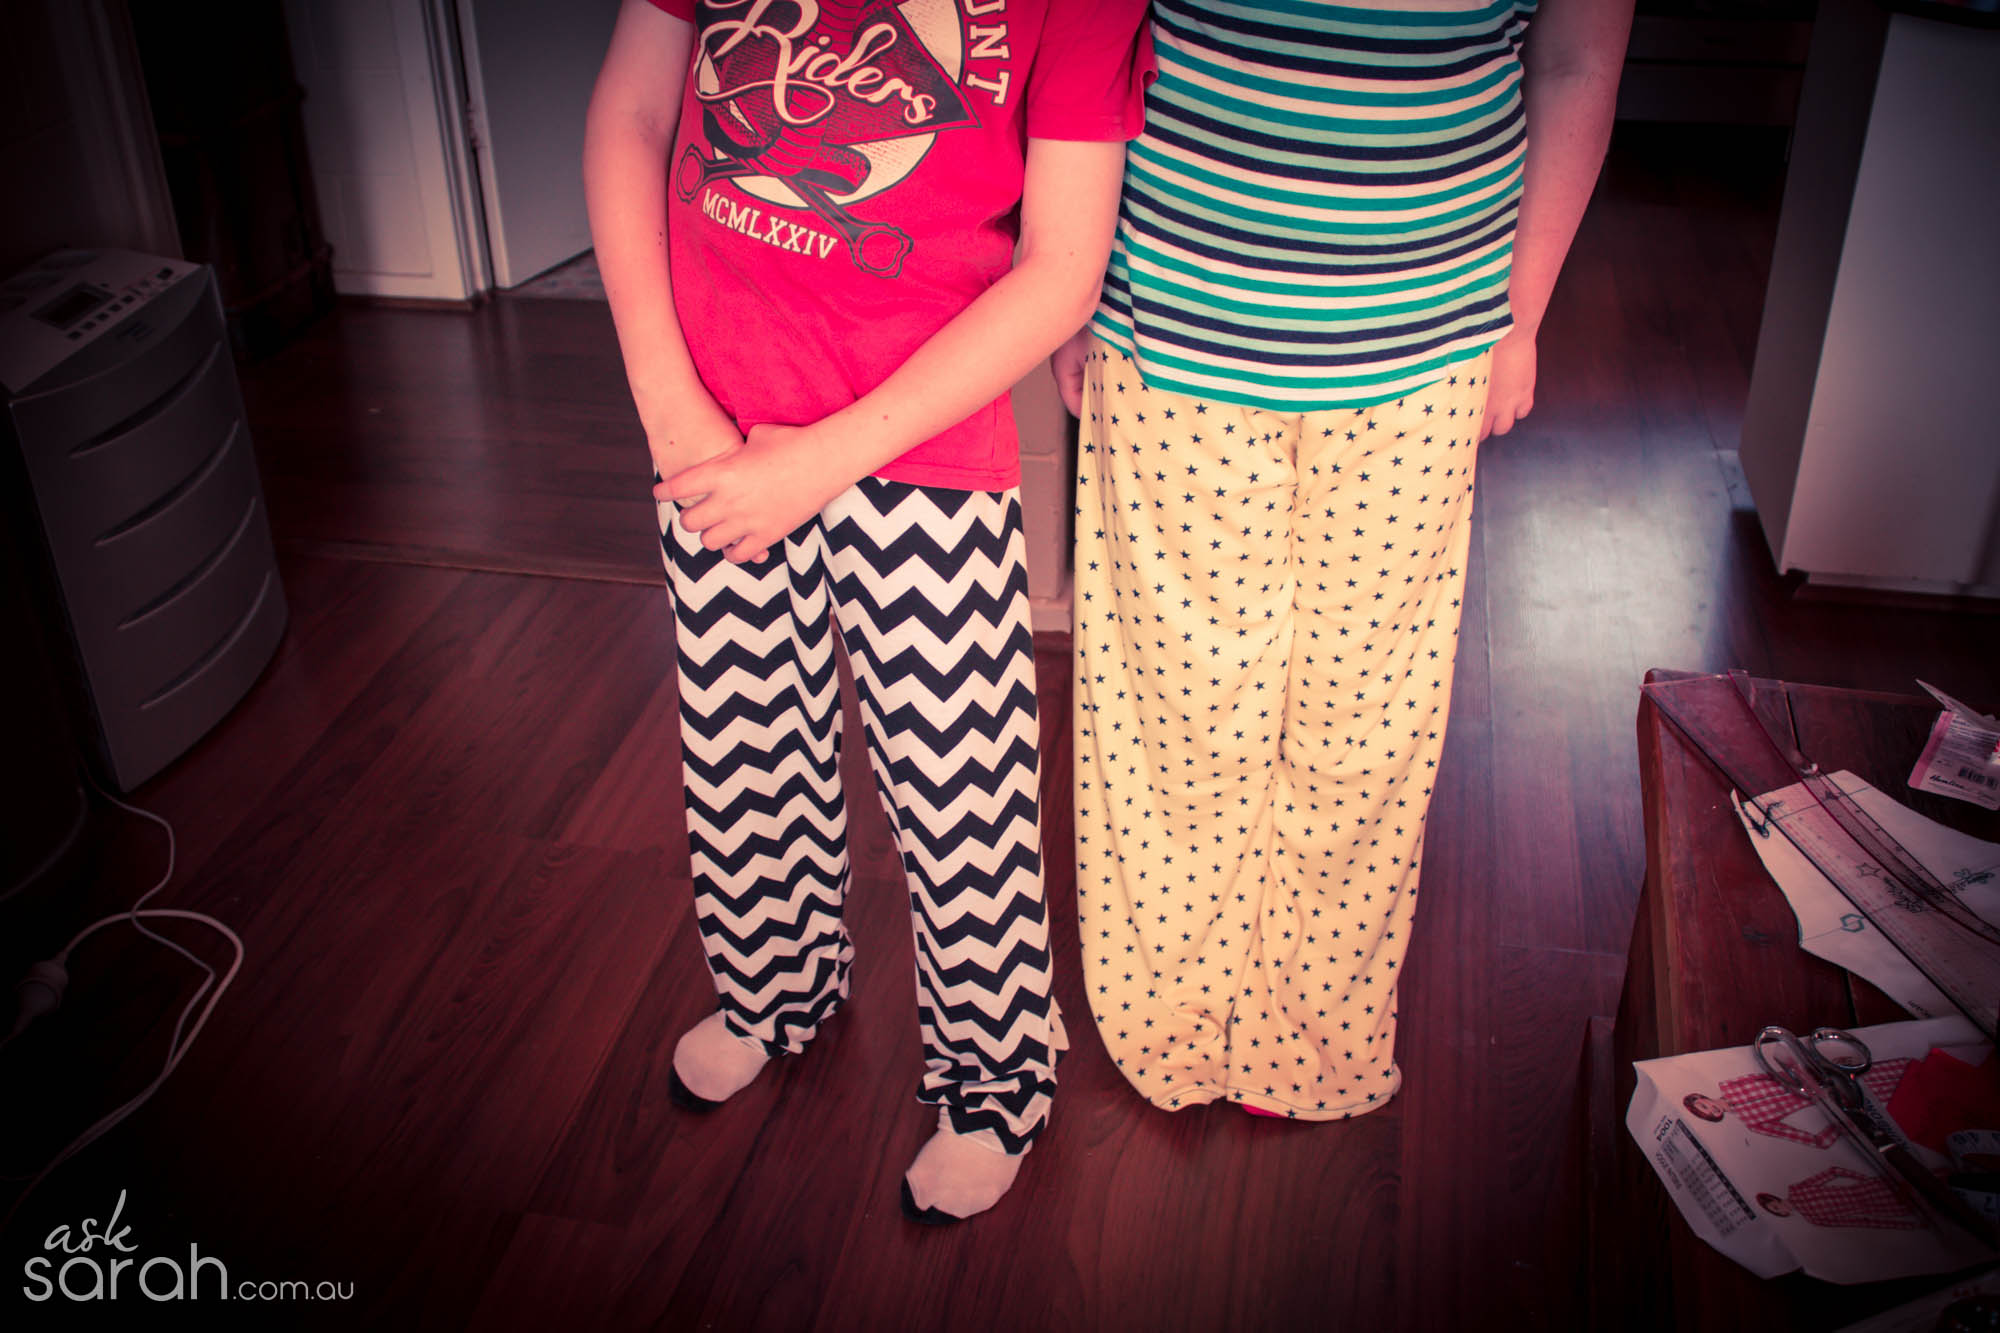 Sew: DIY Pyjama Pant Party! {Sewing with Kids & link to pattern making tutorial included}